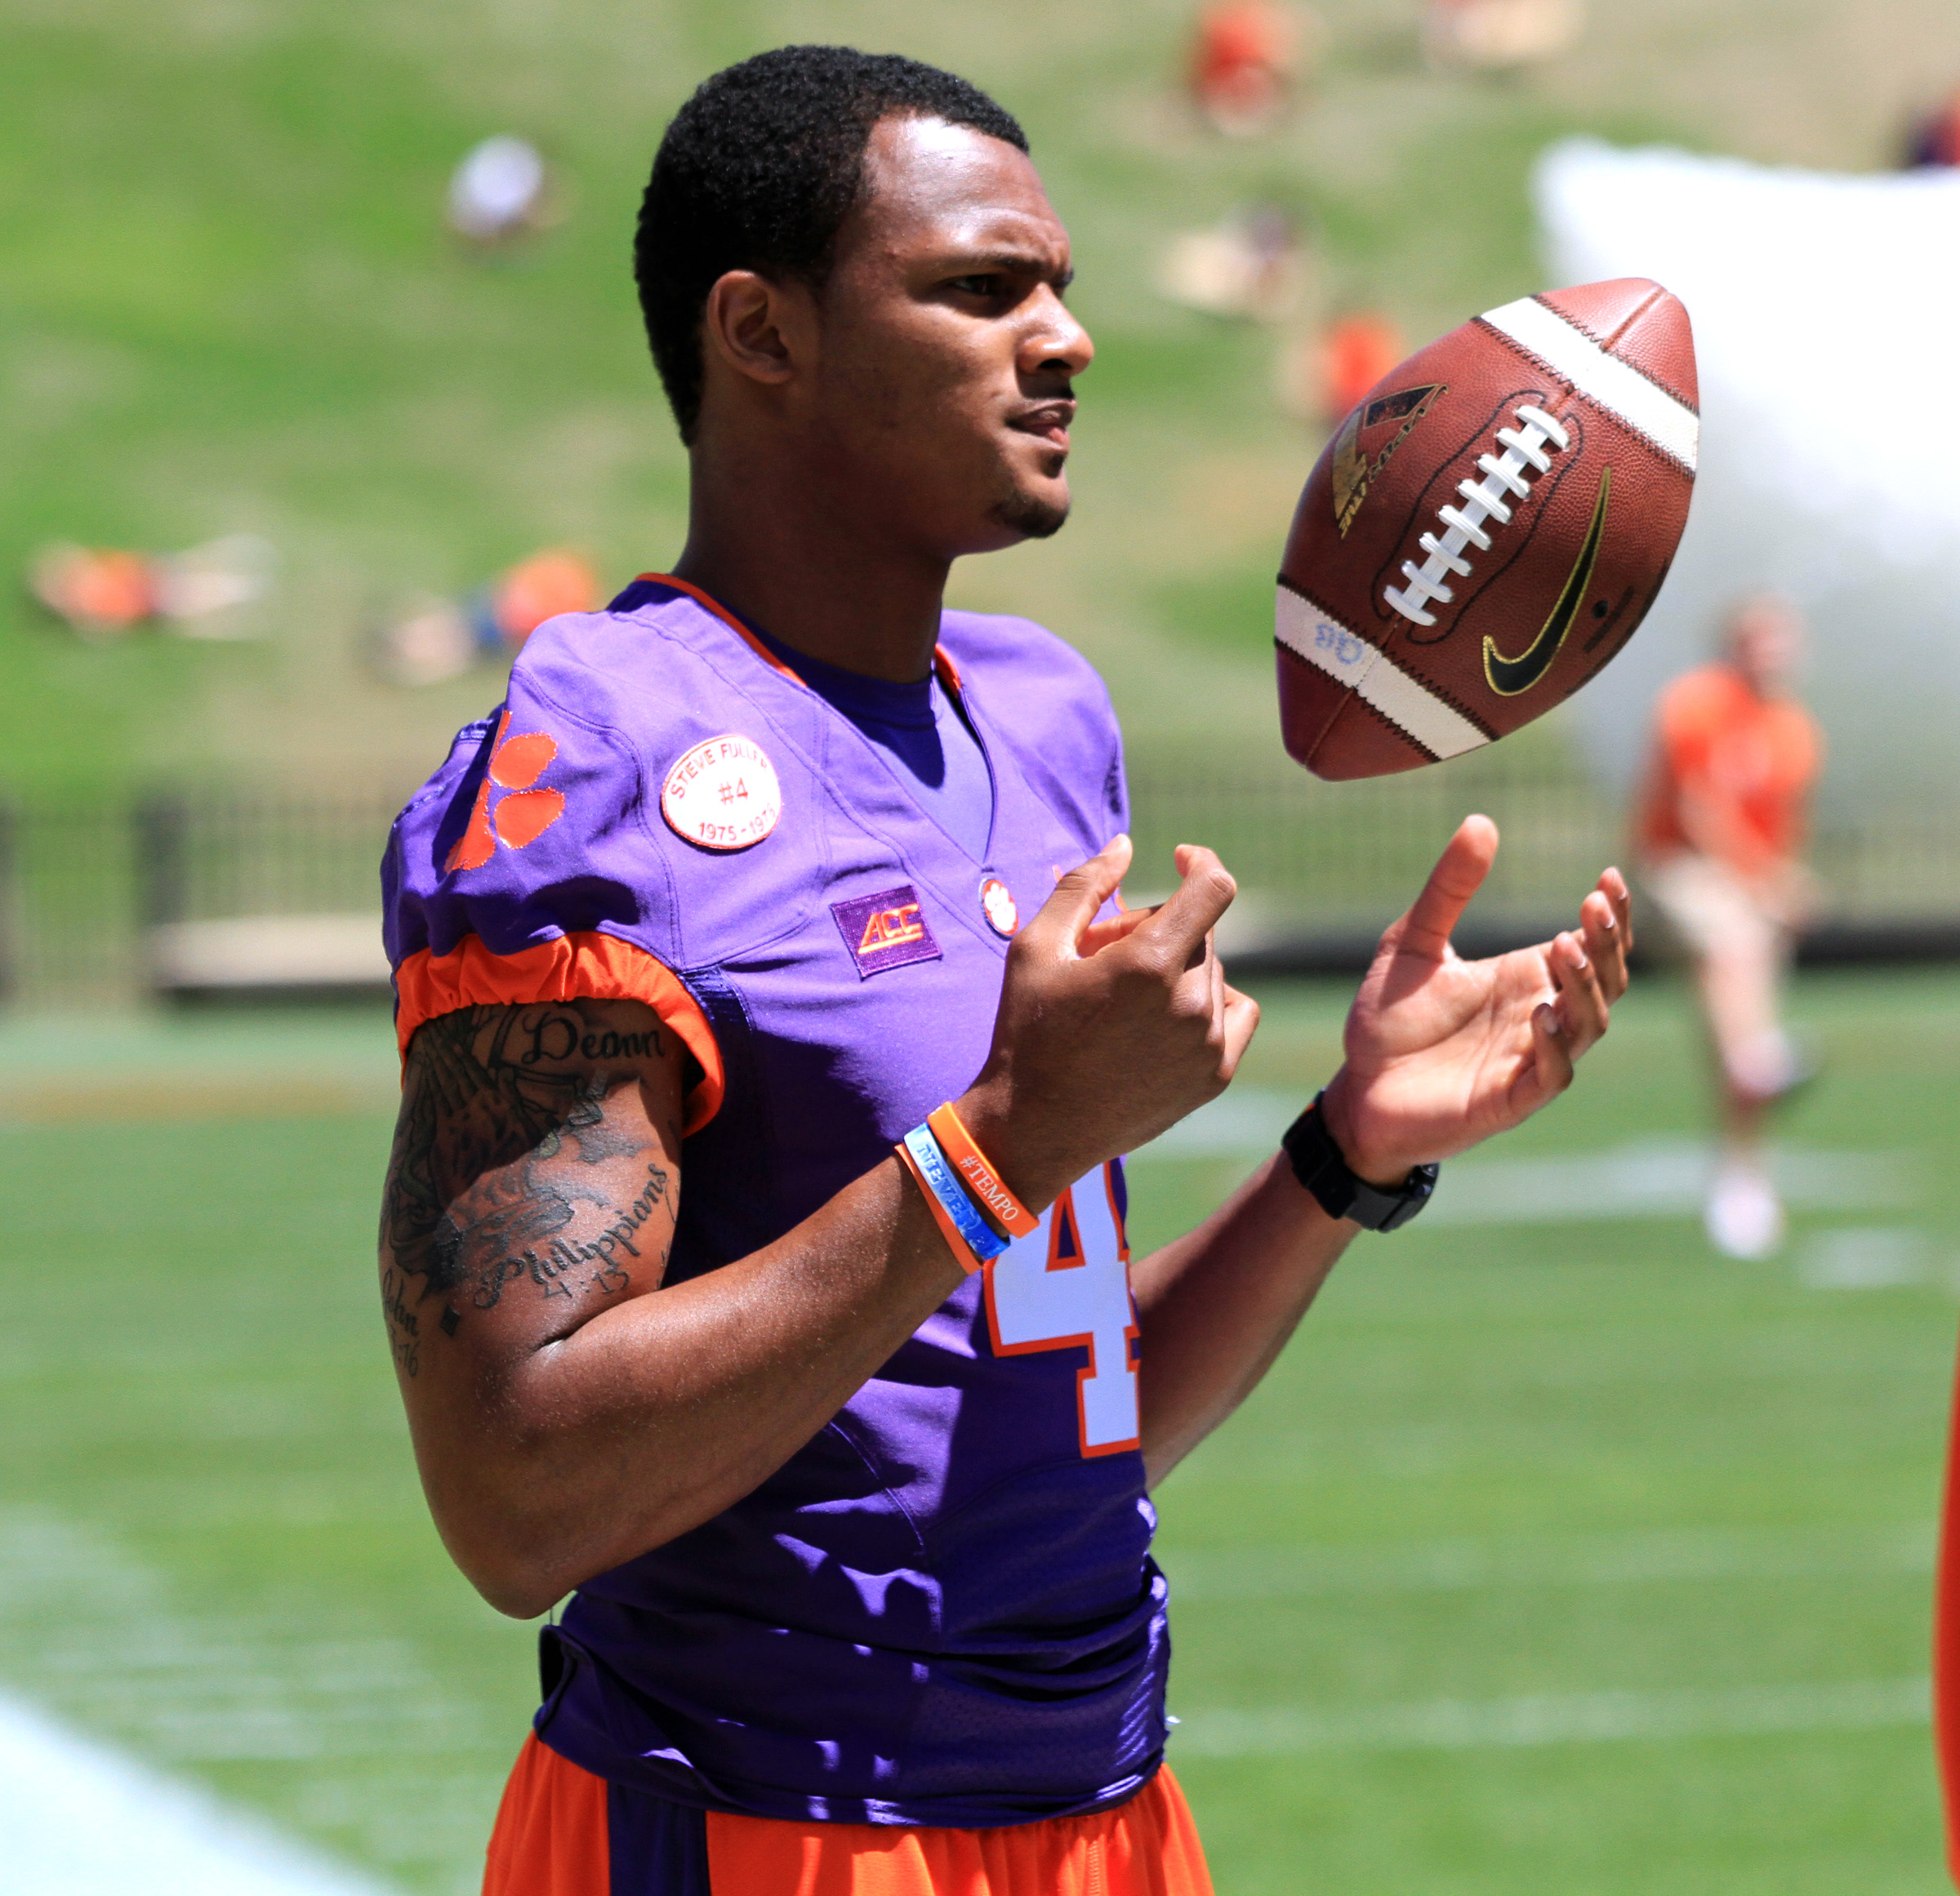 FILE - In this April 11, 2015, file photo, quarterback Deshaun Watson tosses a ball before Clemson's  NCAA college football spring game at Memorial Stadium in Clemson, S.C. Deshaun Watson was the most talked about player this spring without ever taking a